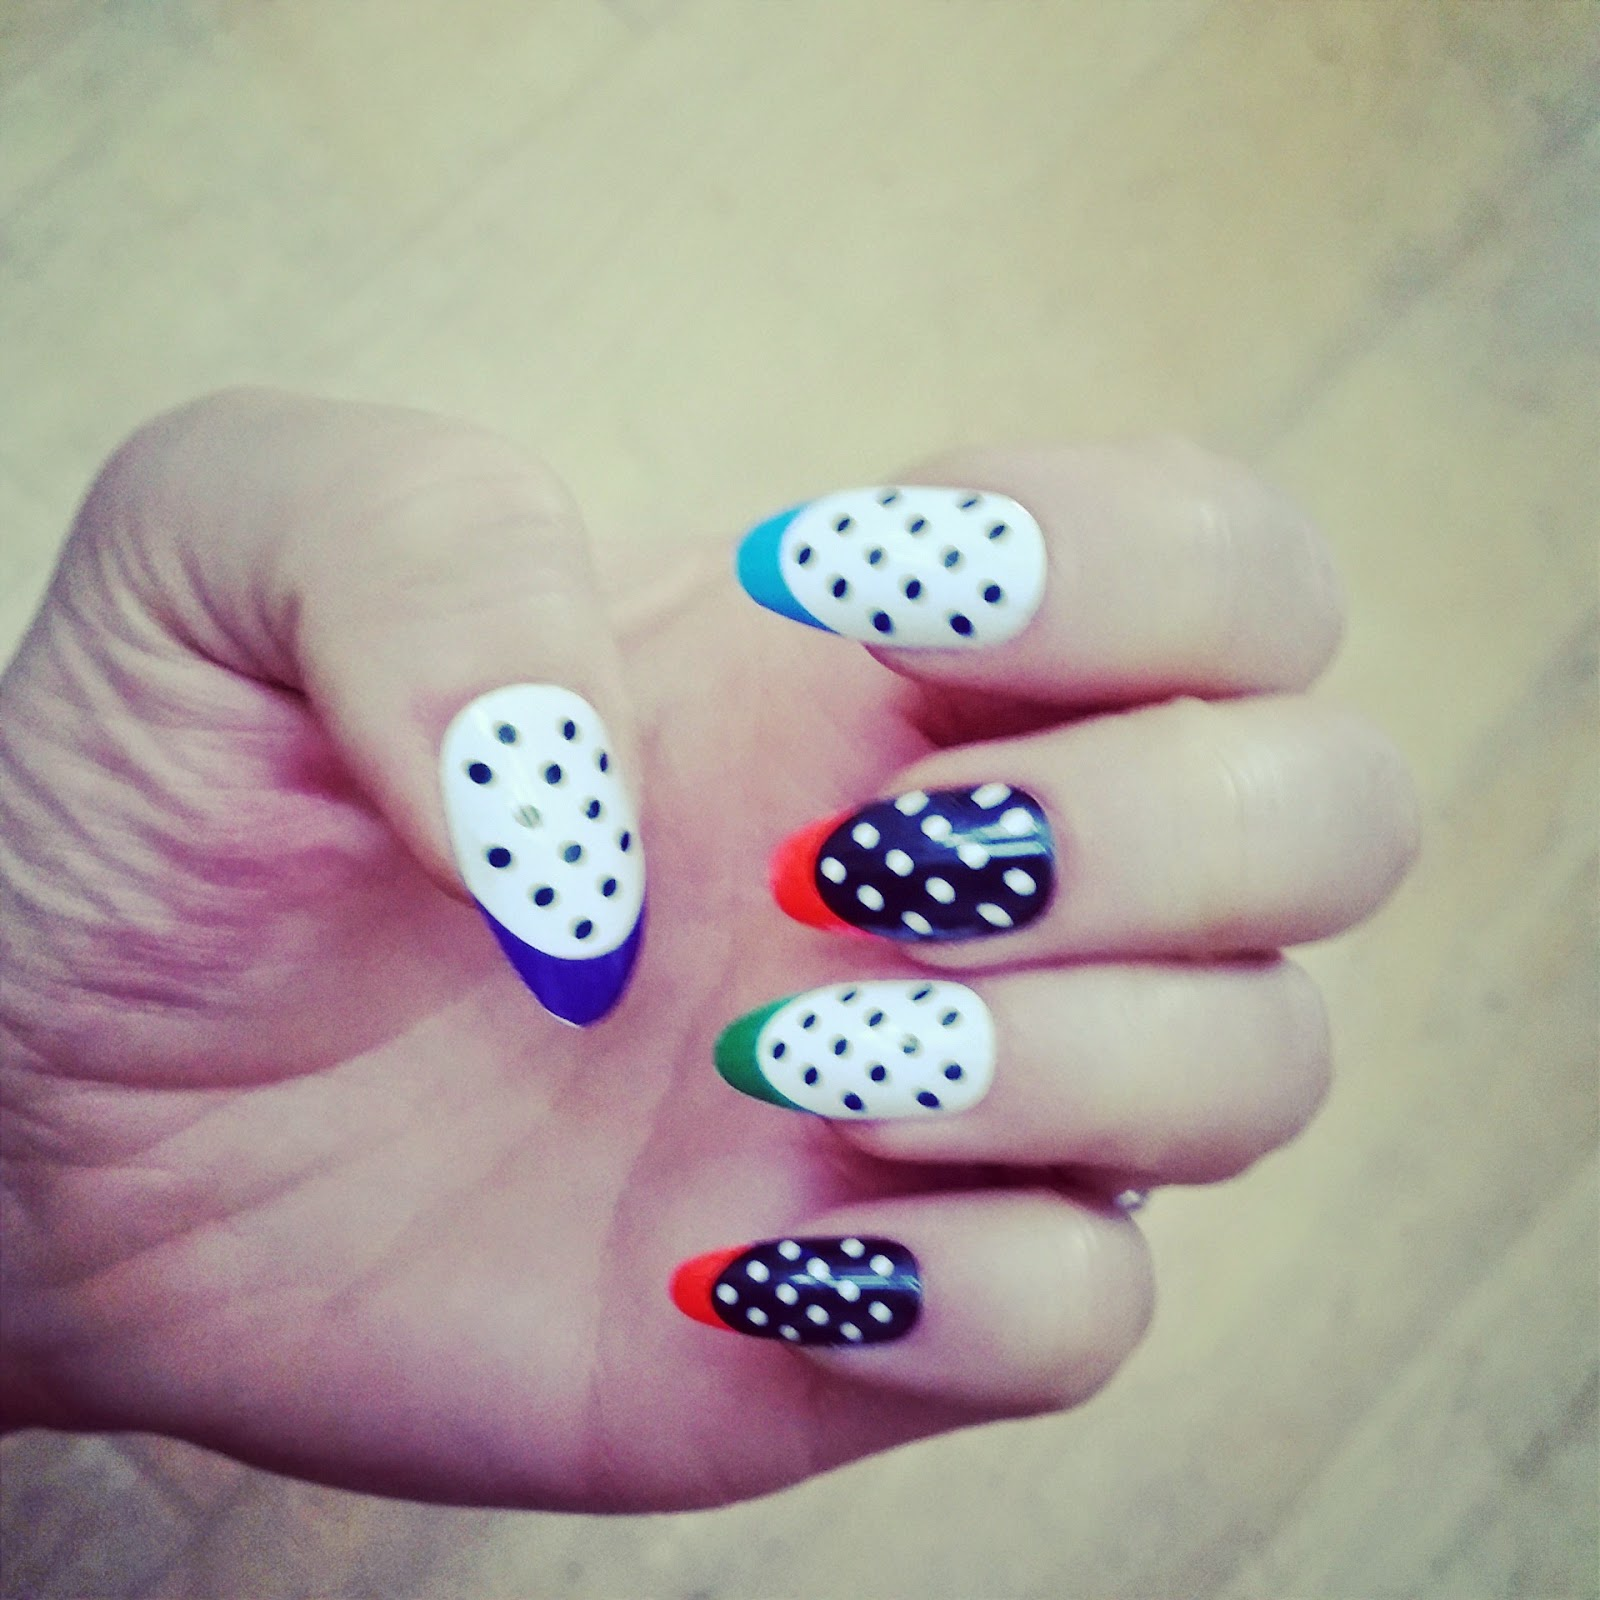 Likes and love house of holland stick on nail art in neon nibs prinsesfo Images